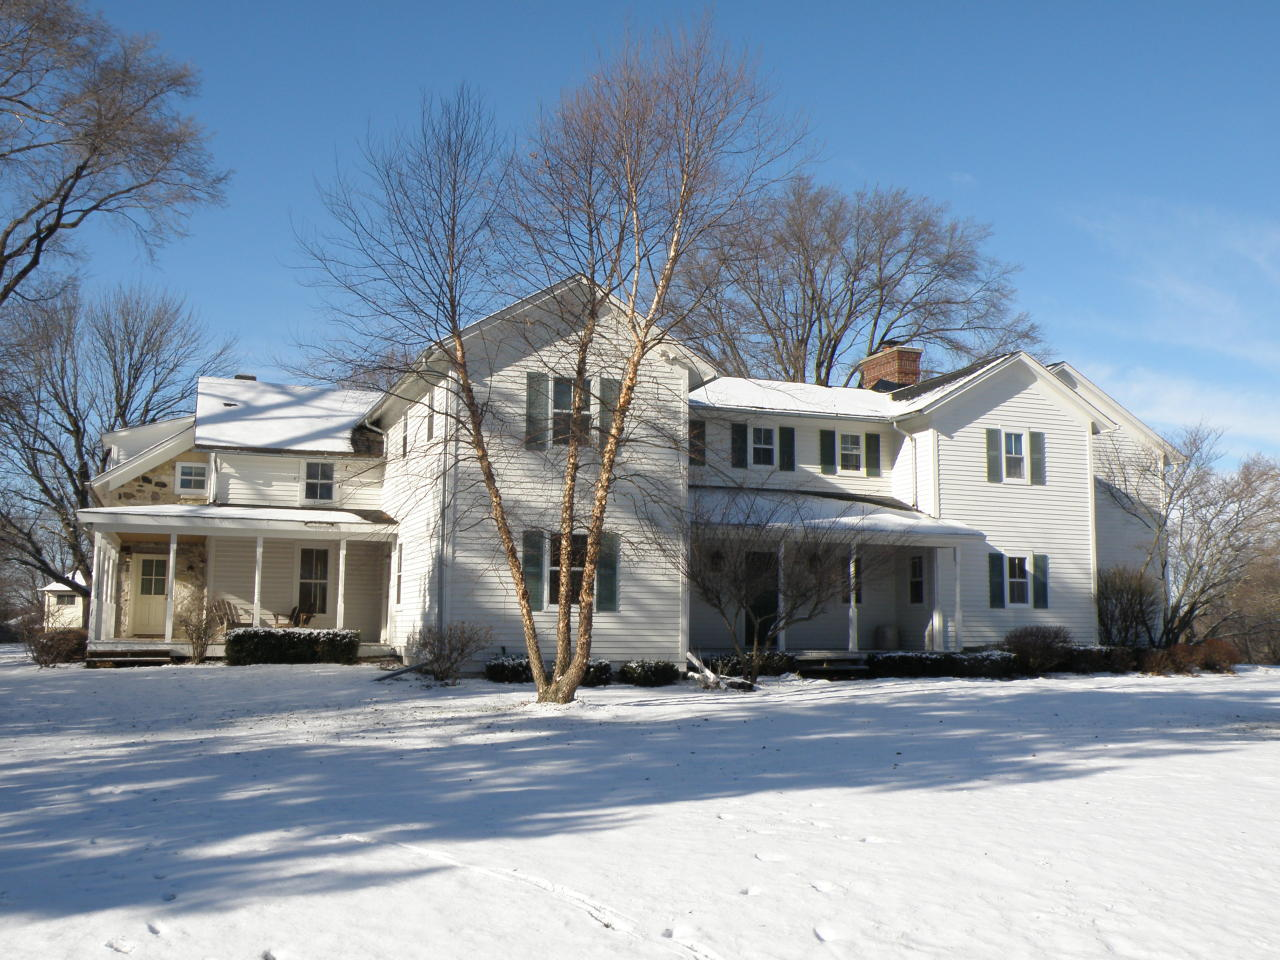 1785 Whitemont Dr, Brookfield, Wisconsin 53045, 5 Bedrooms Bedrooms, 14 Rooms Rooms,3 BathroomsBathrooms,Single-Family,For Sale,Whitemont Dr,1622425